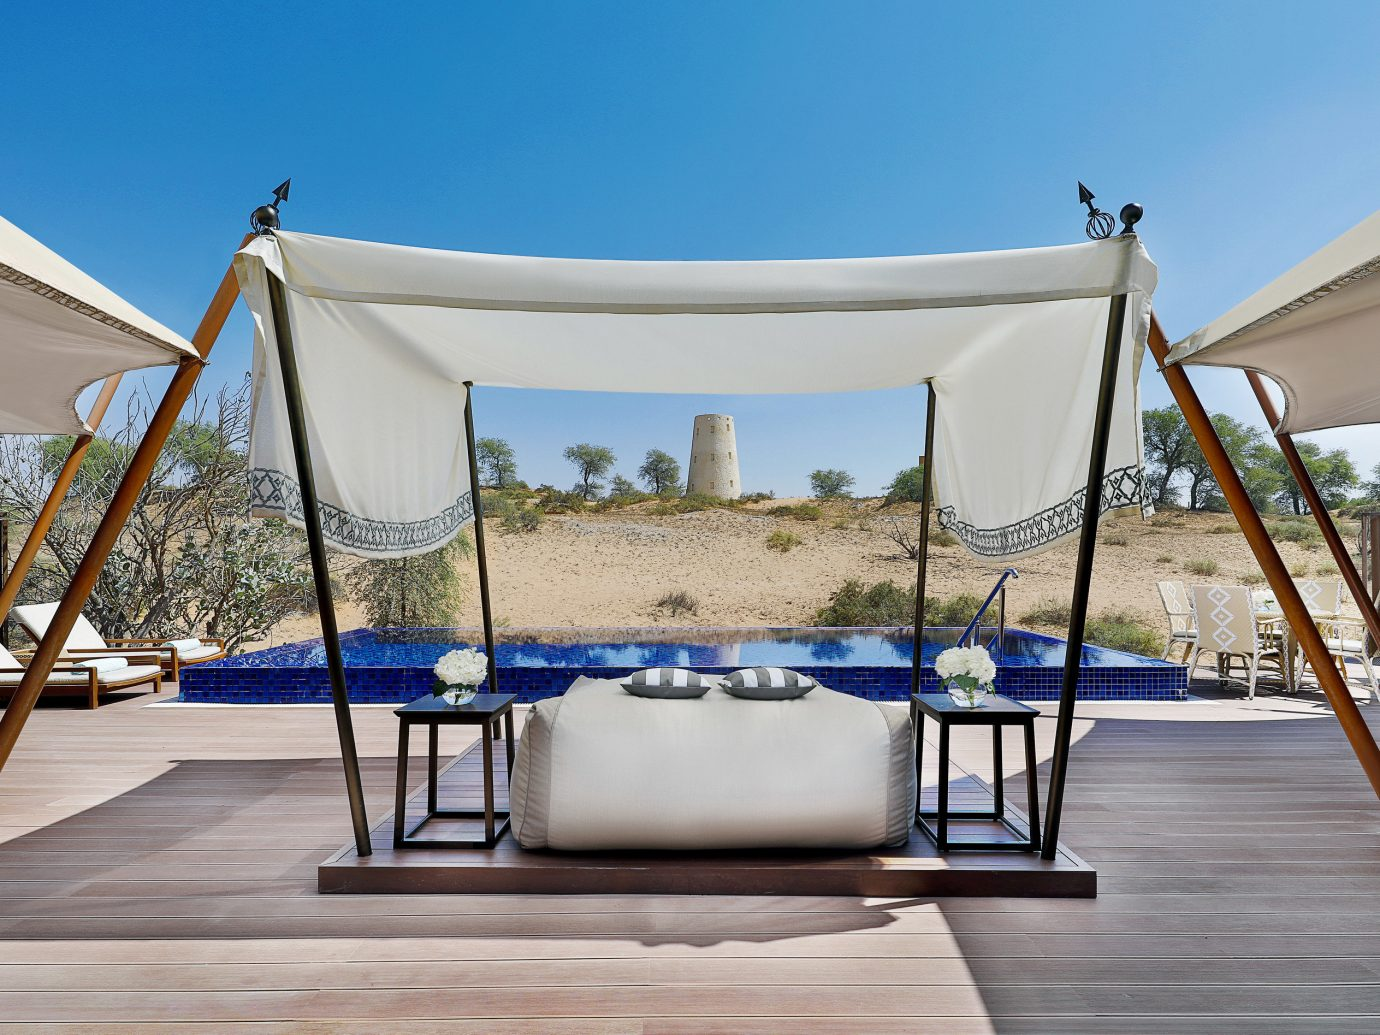 Trip Ideas canopy sunlounger outdoor furniture shade tent outdoor structure gazebo pavilion furniture